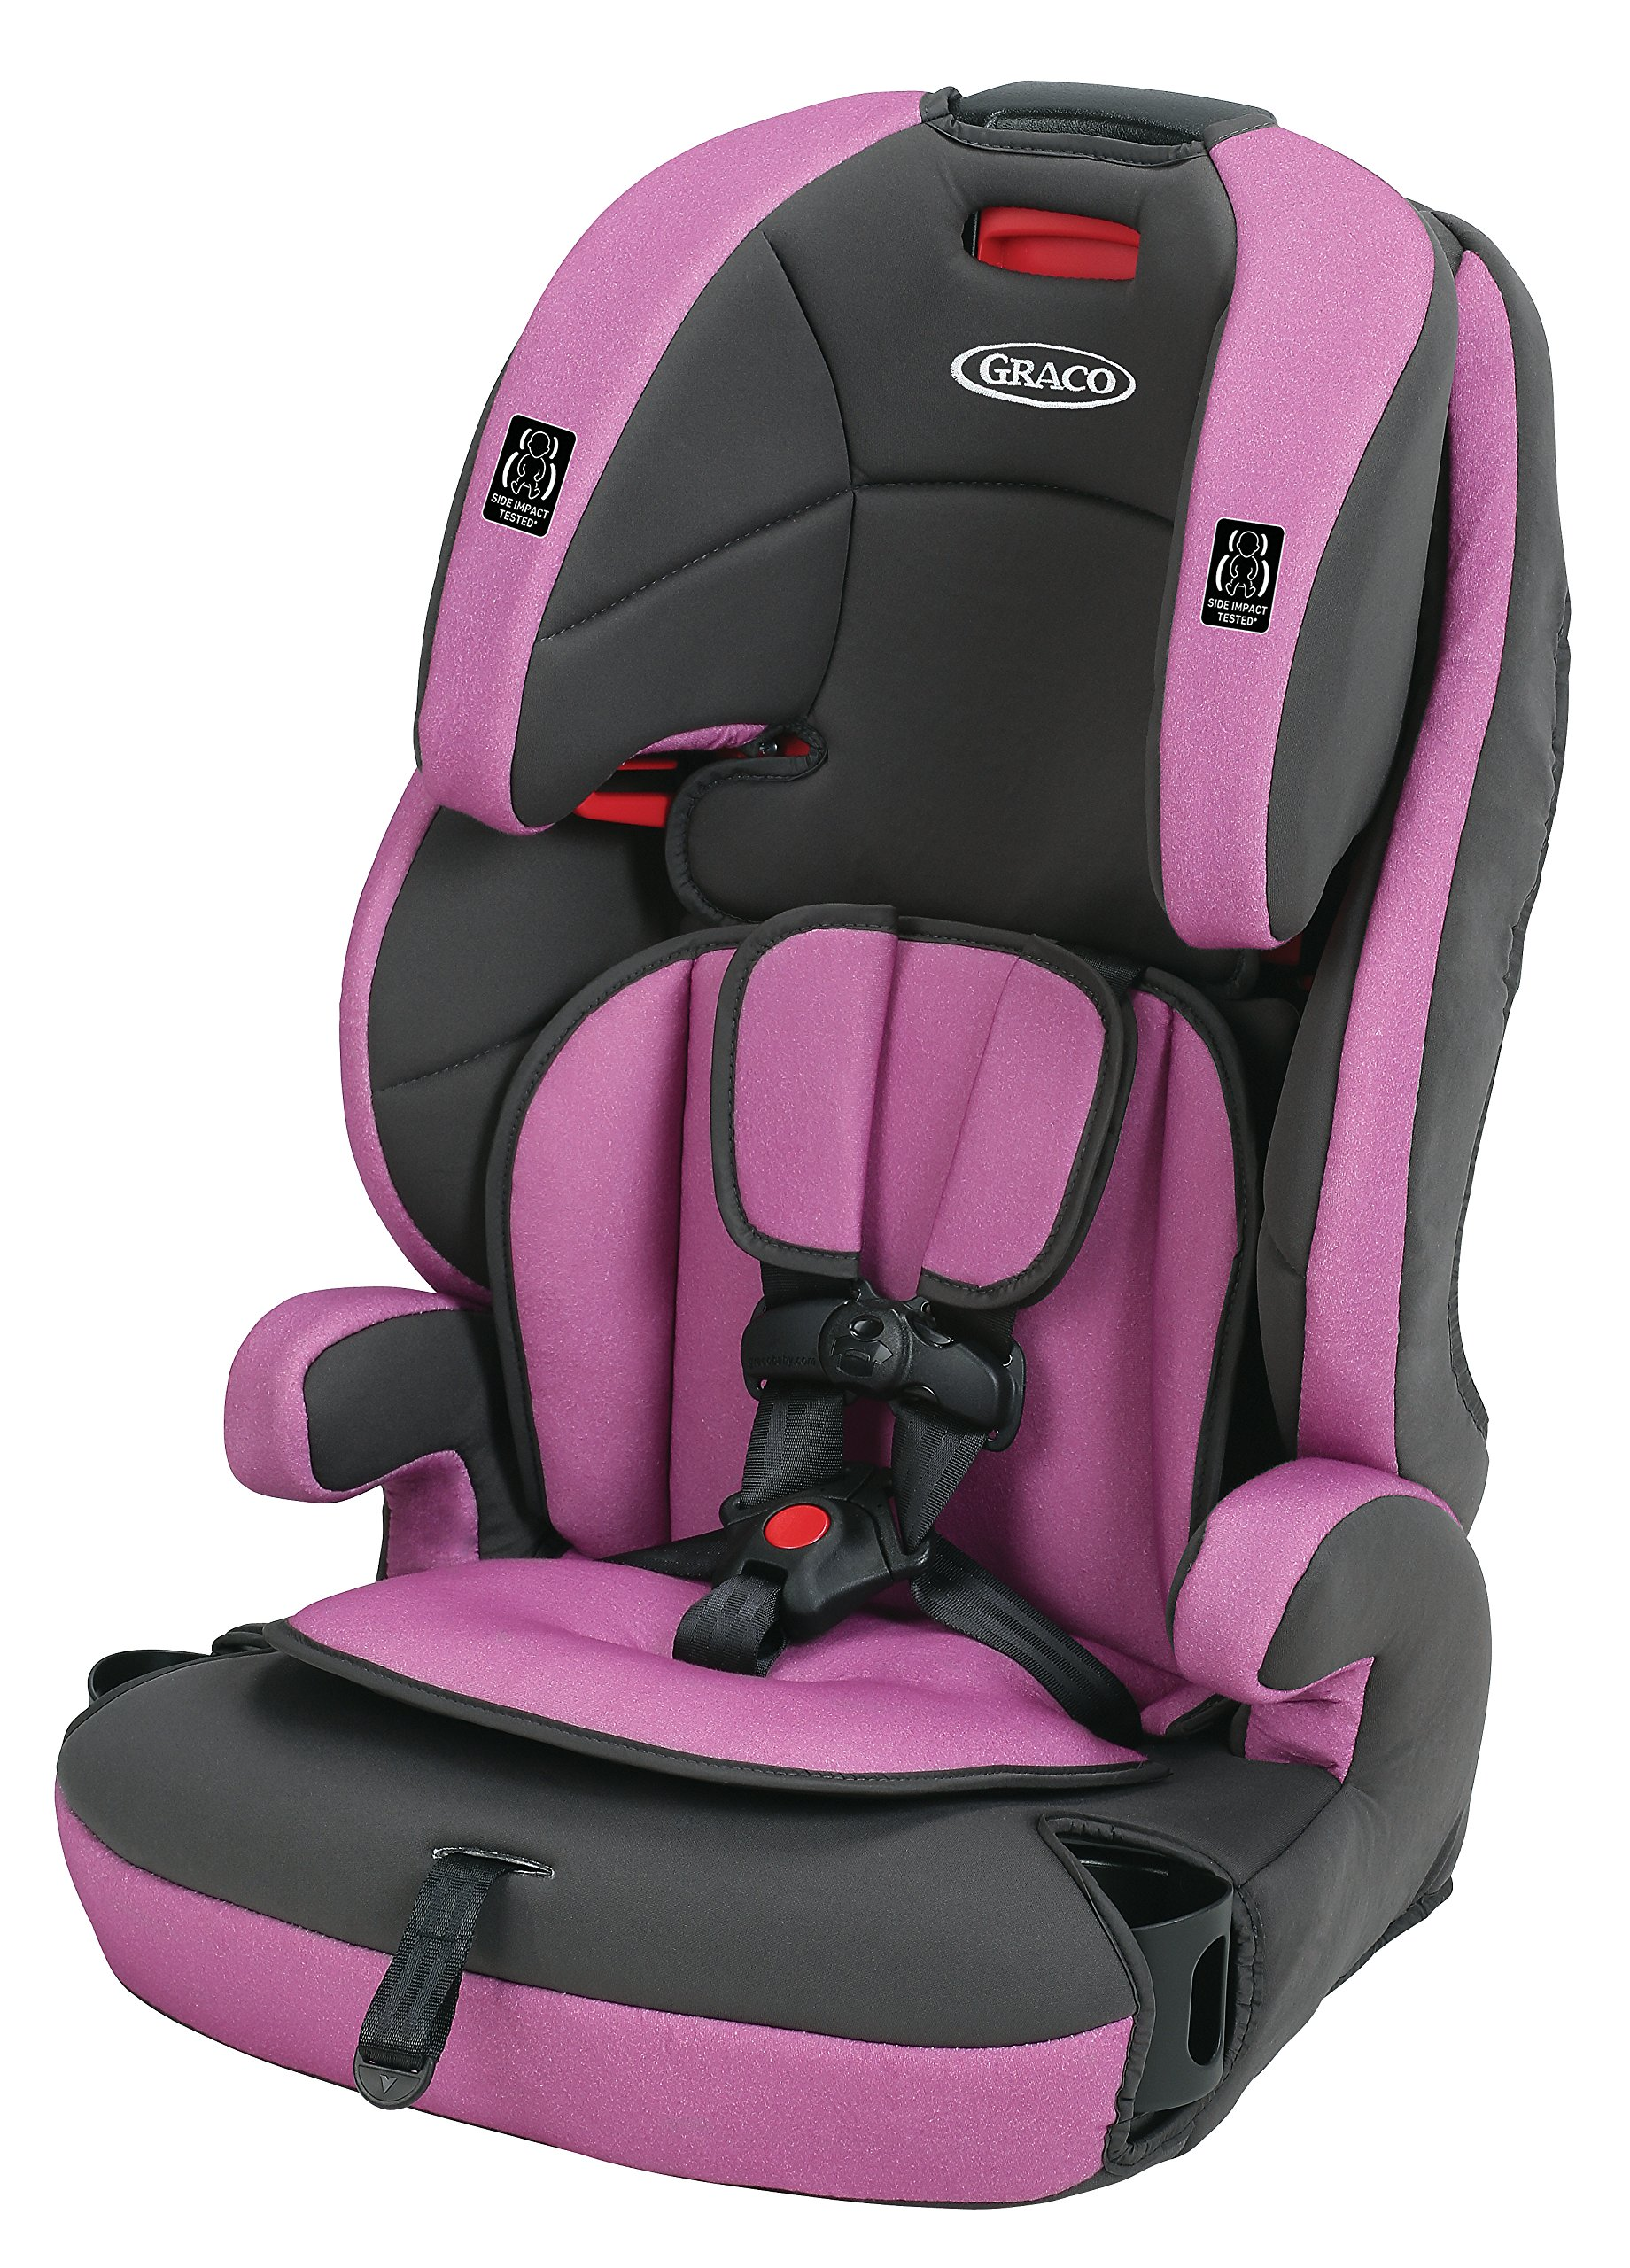 graco affix youth booster seat with latch system grapeade child safety booster. Black Bedroom Furniture Sets. Home Design Ideas